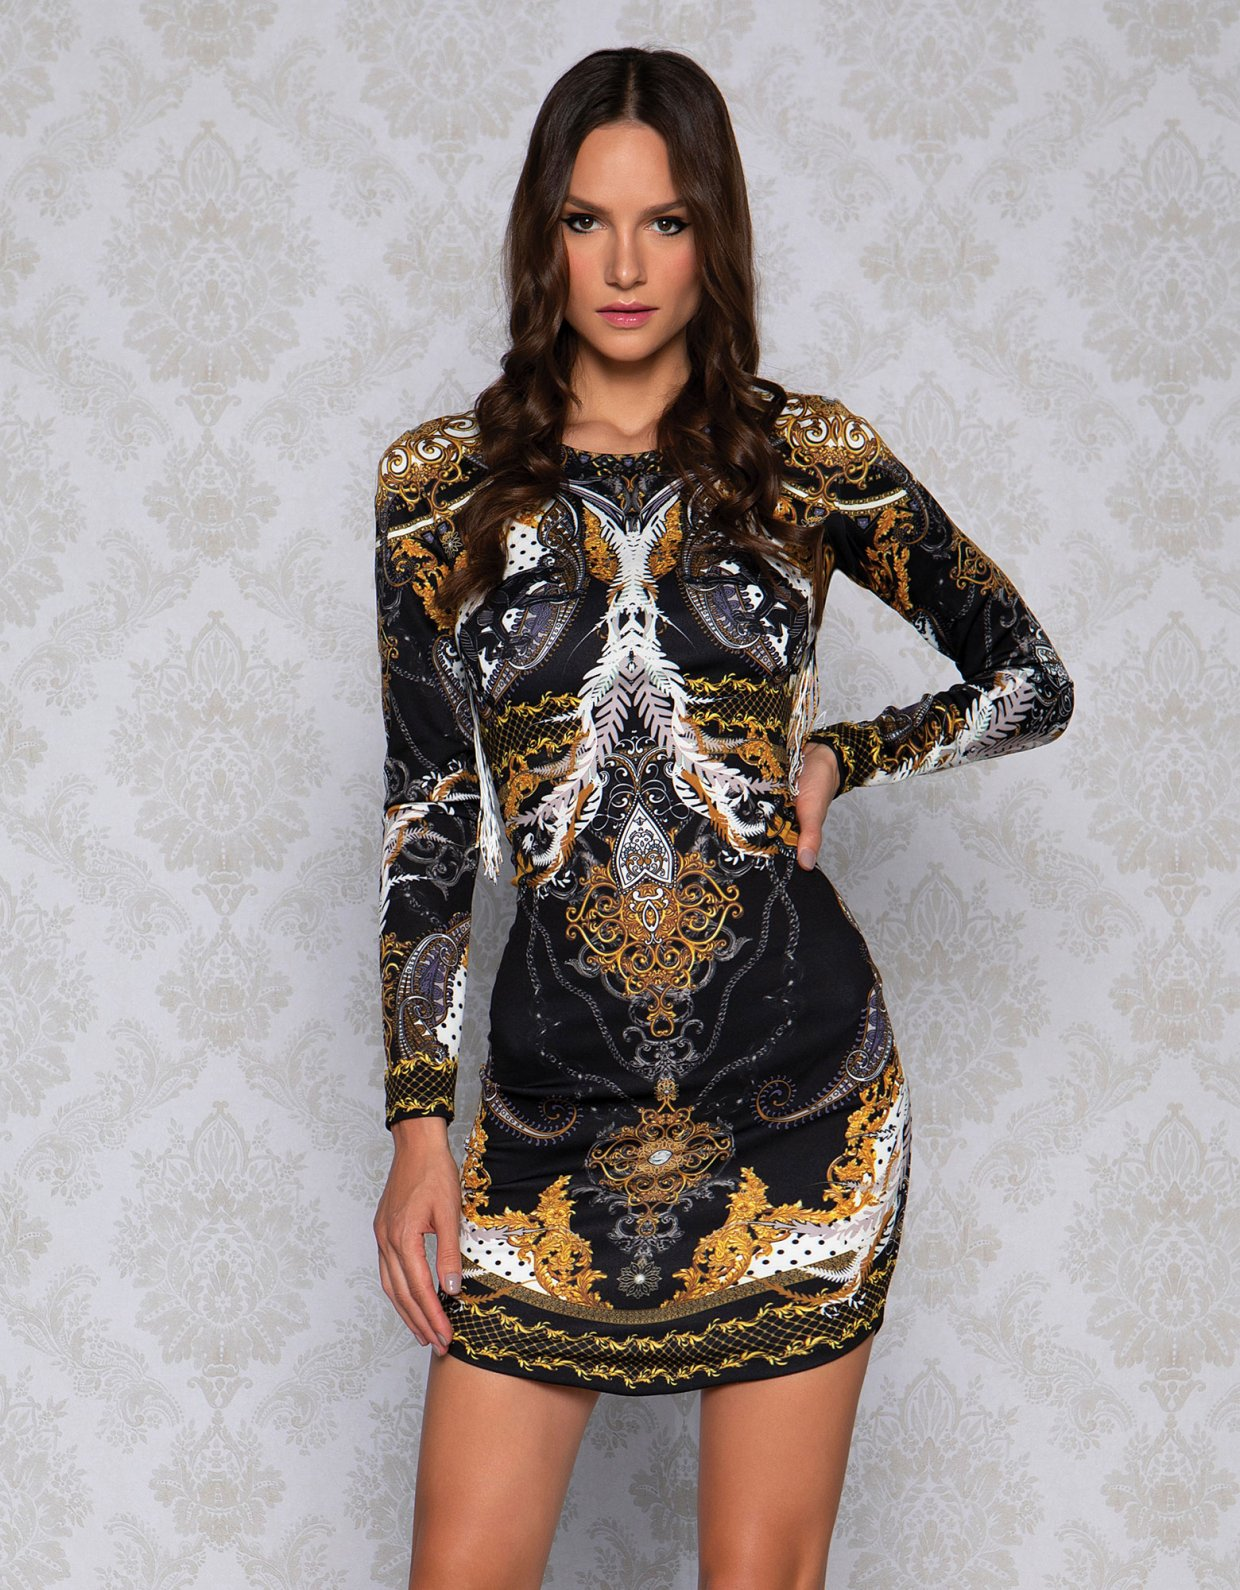 Peace & Chaos Panther baroque bodycon dress